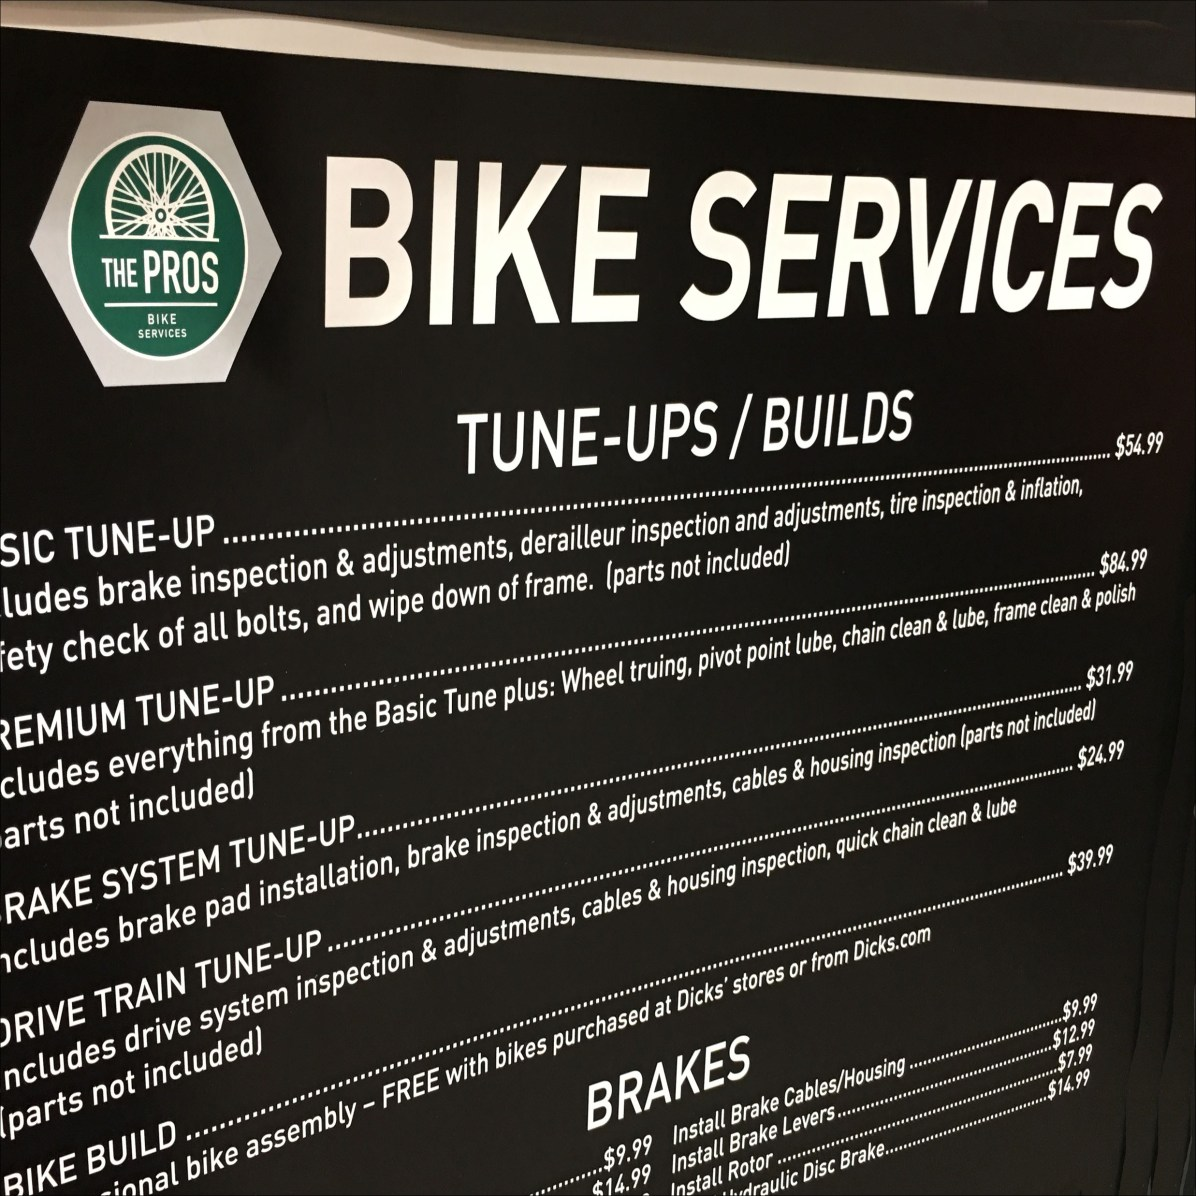 In-Store Bike Services Menu Signage